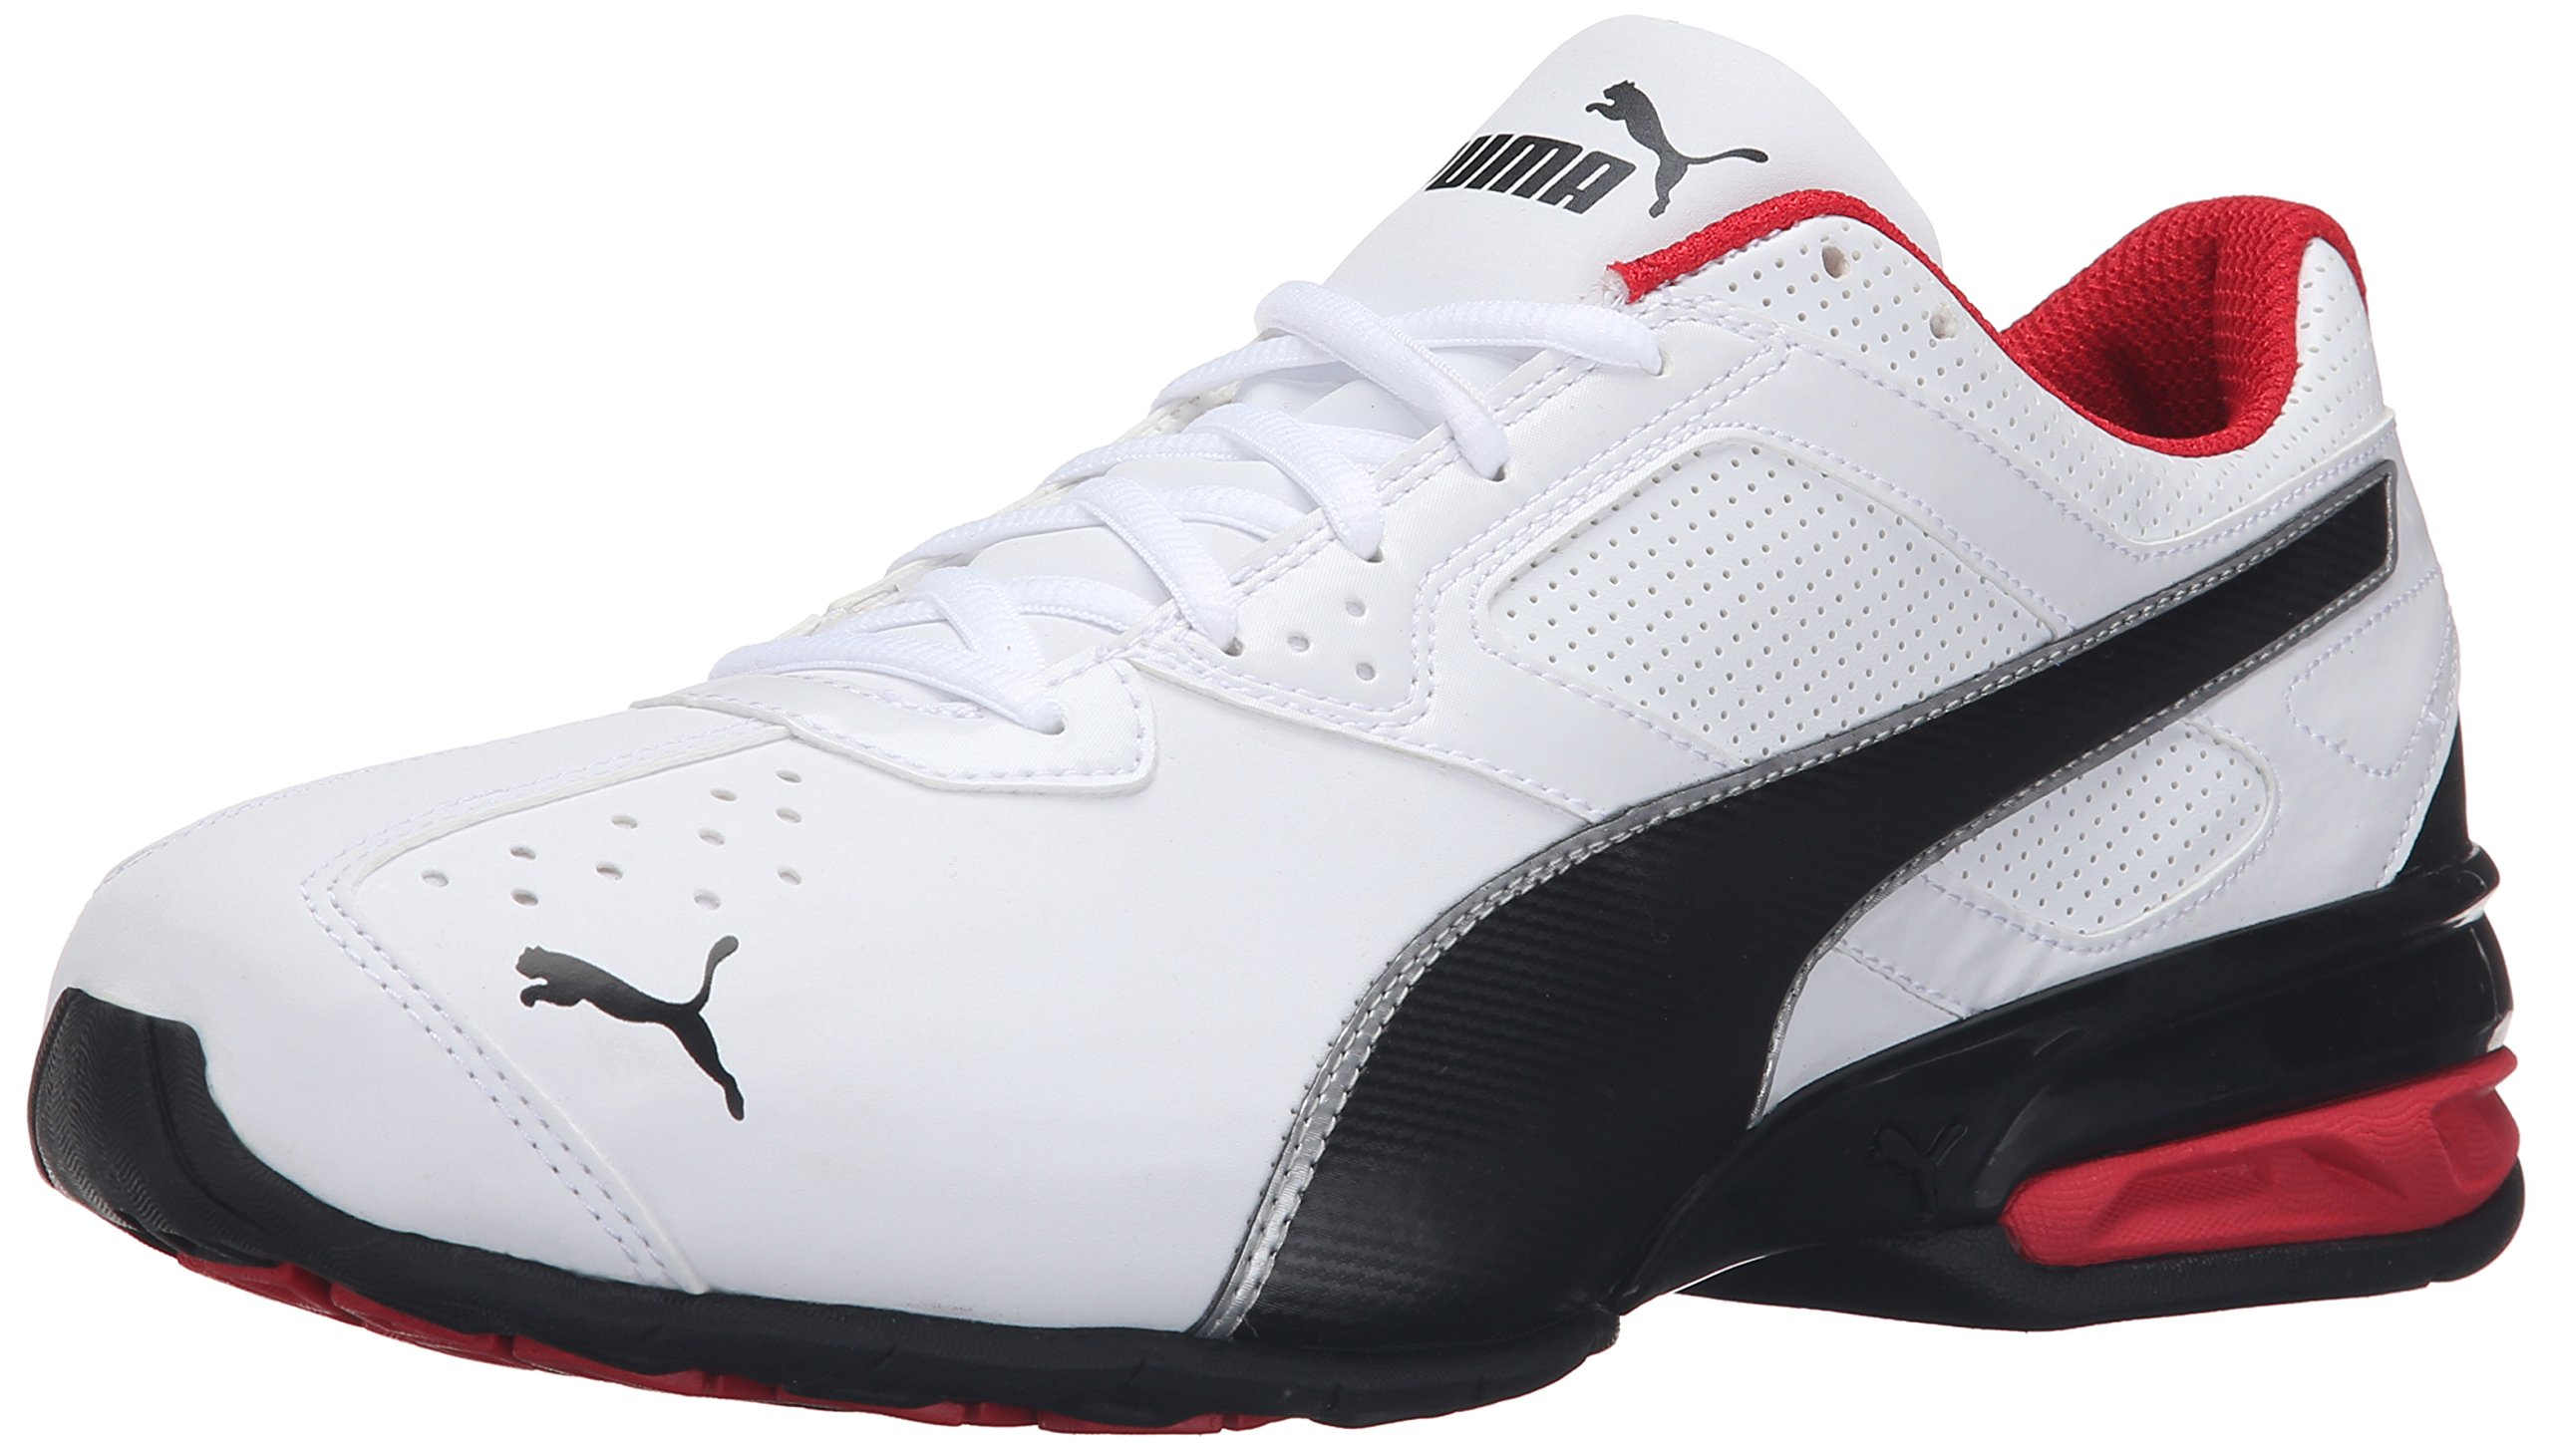 PUMA Men's Tazon 6 FM Puma White/ Puma Black/ Puma Silver Running Shoe - 11 D(M) US by PUMA